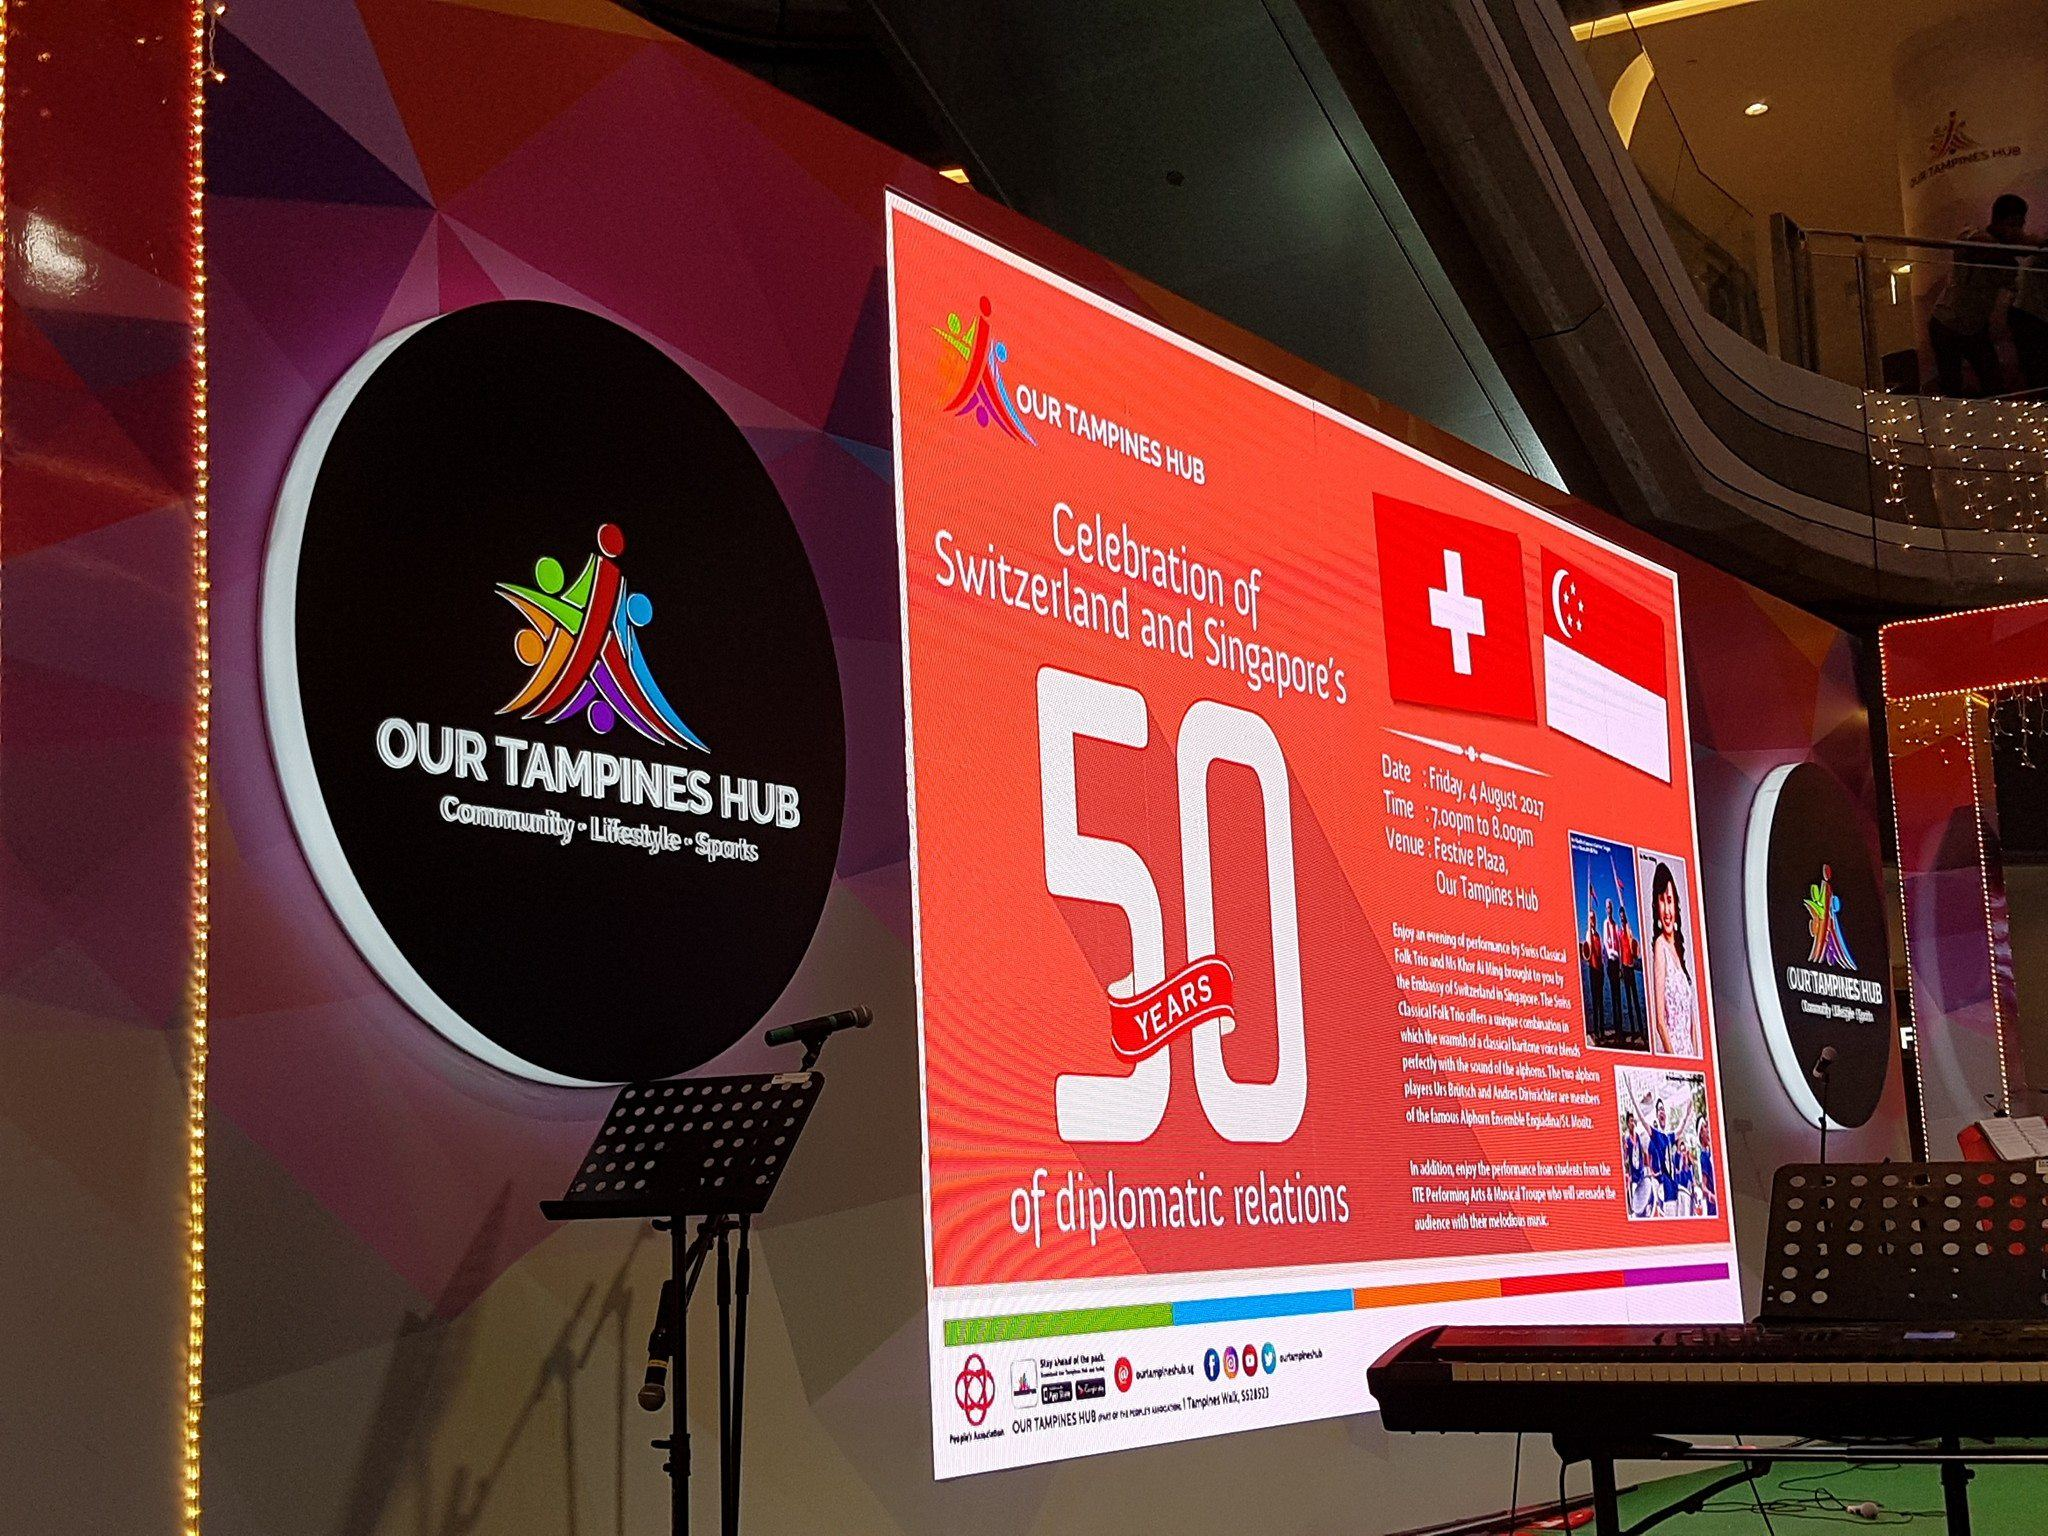 Celebration of Switzerland and Singapore's 50 years of Diplomatic Relations